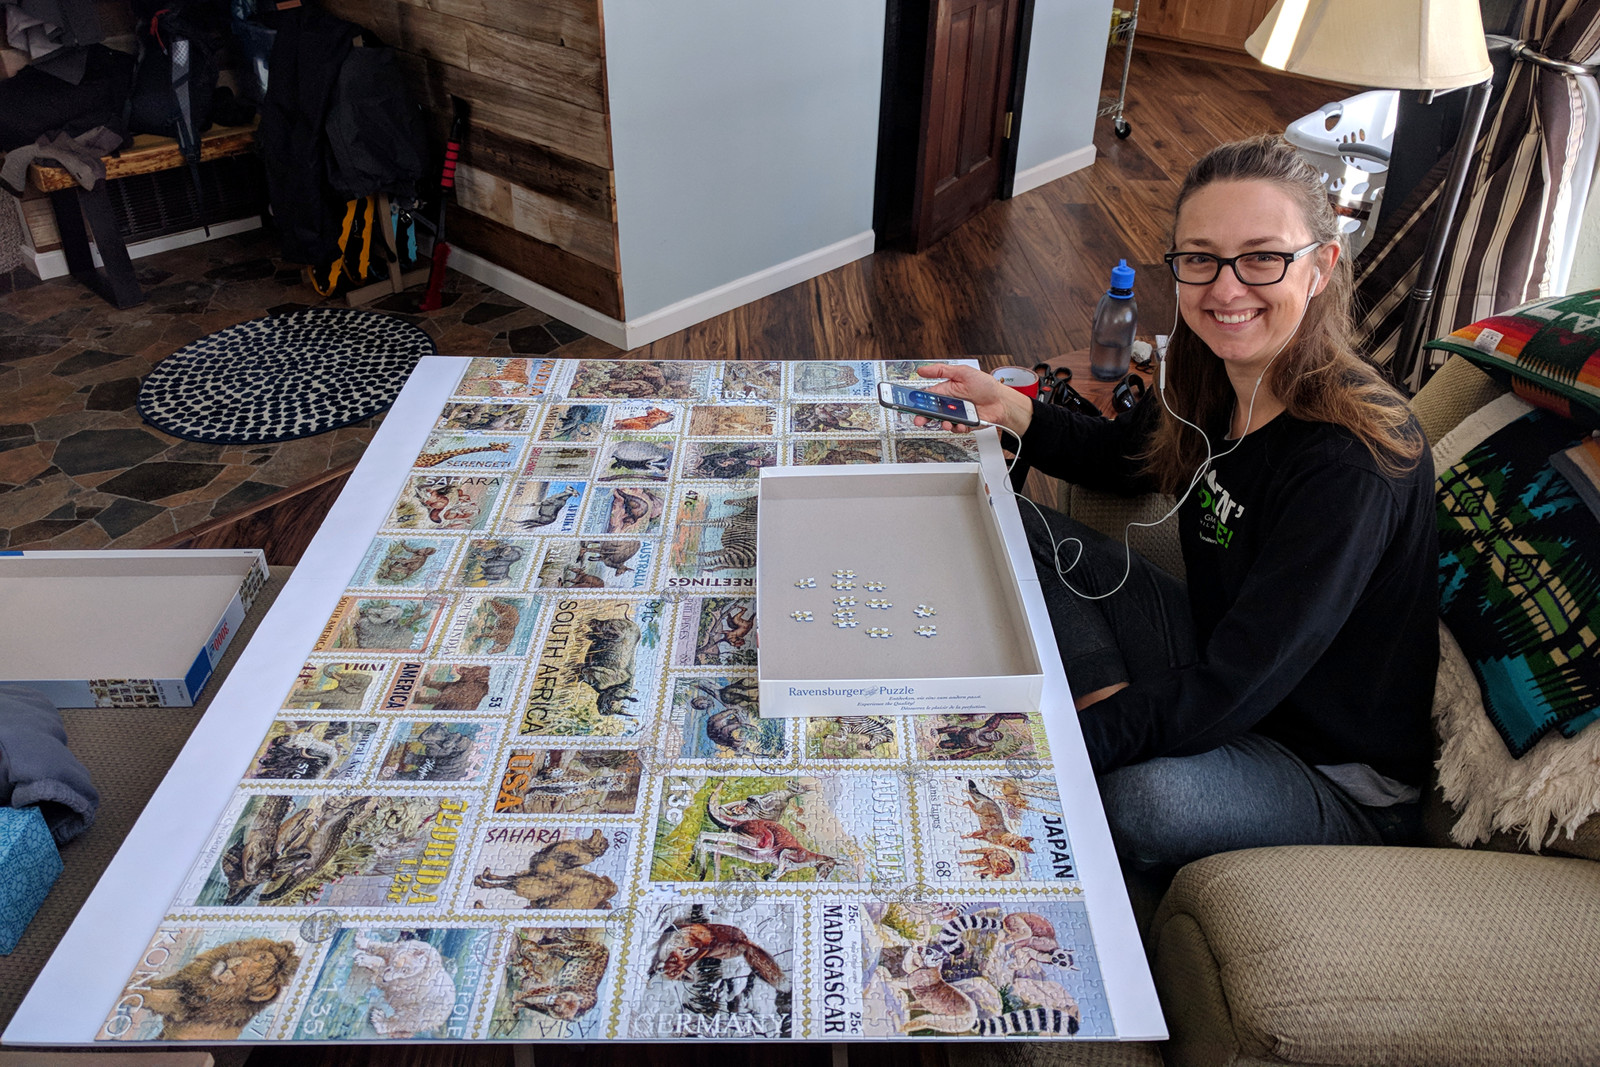 Stephanie almost done with the 3000-piece Animal Stamps jigsaw puzzle by Ravensburger